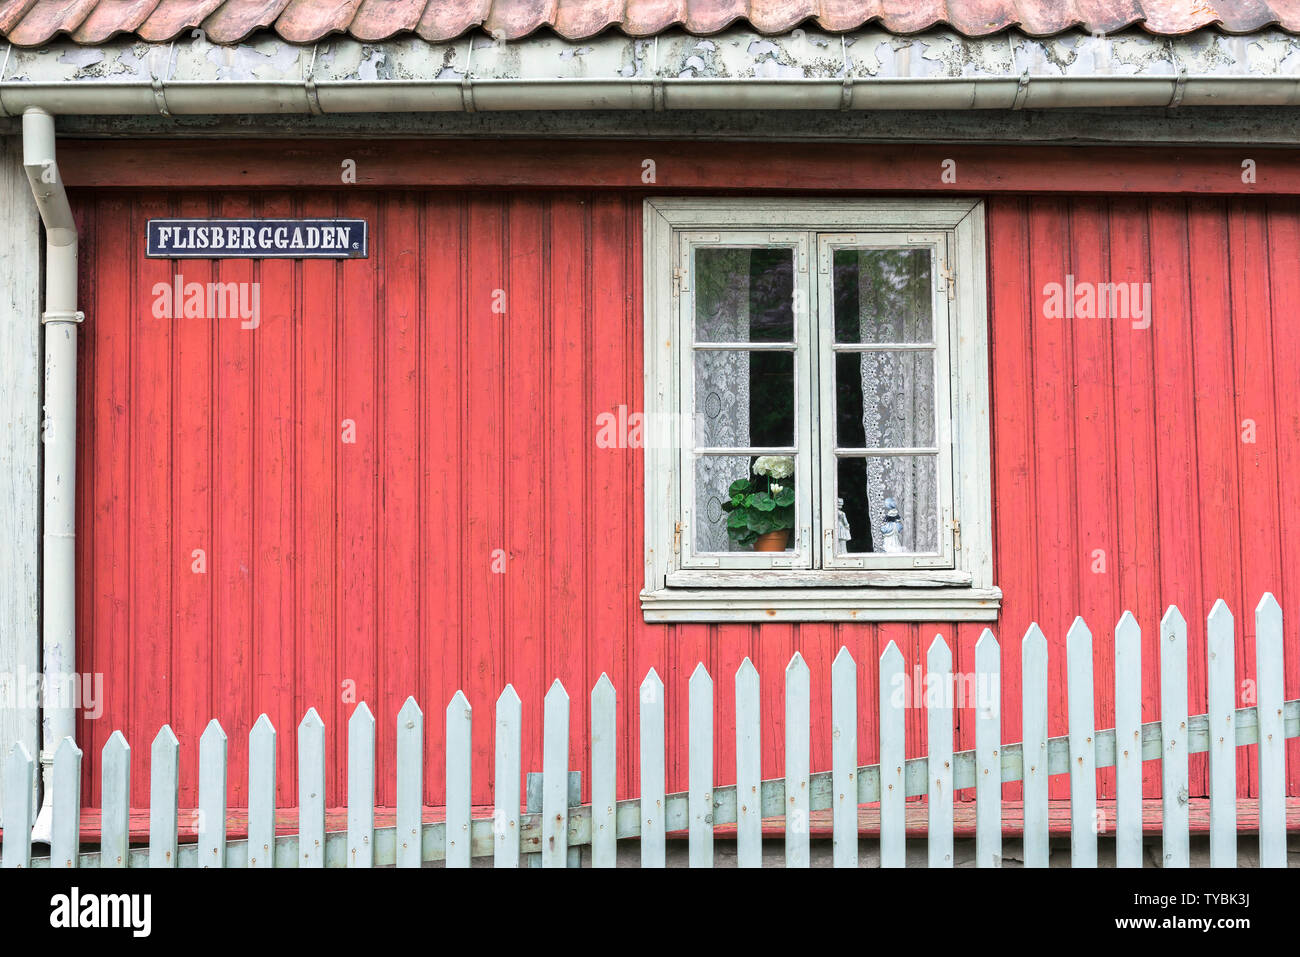 Norway color, view of a red clapboard house typical of 19th century Norwegian domestic architecture sited in the Norsk Folkemuseum in Bygdøy, Oslo. Stock Photo